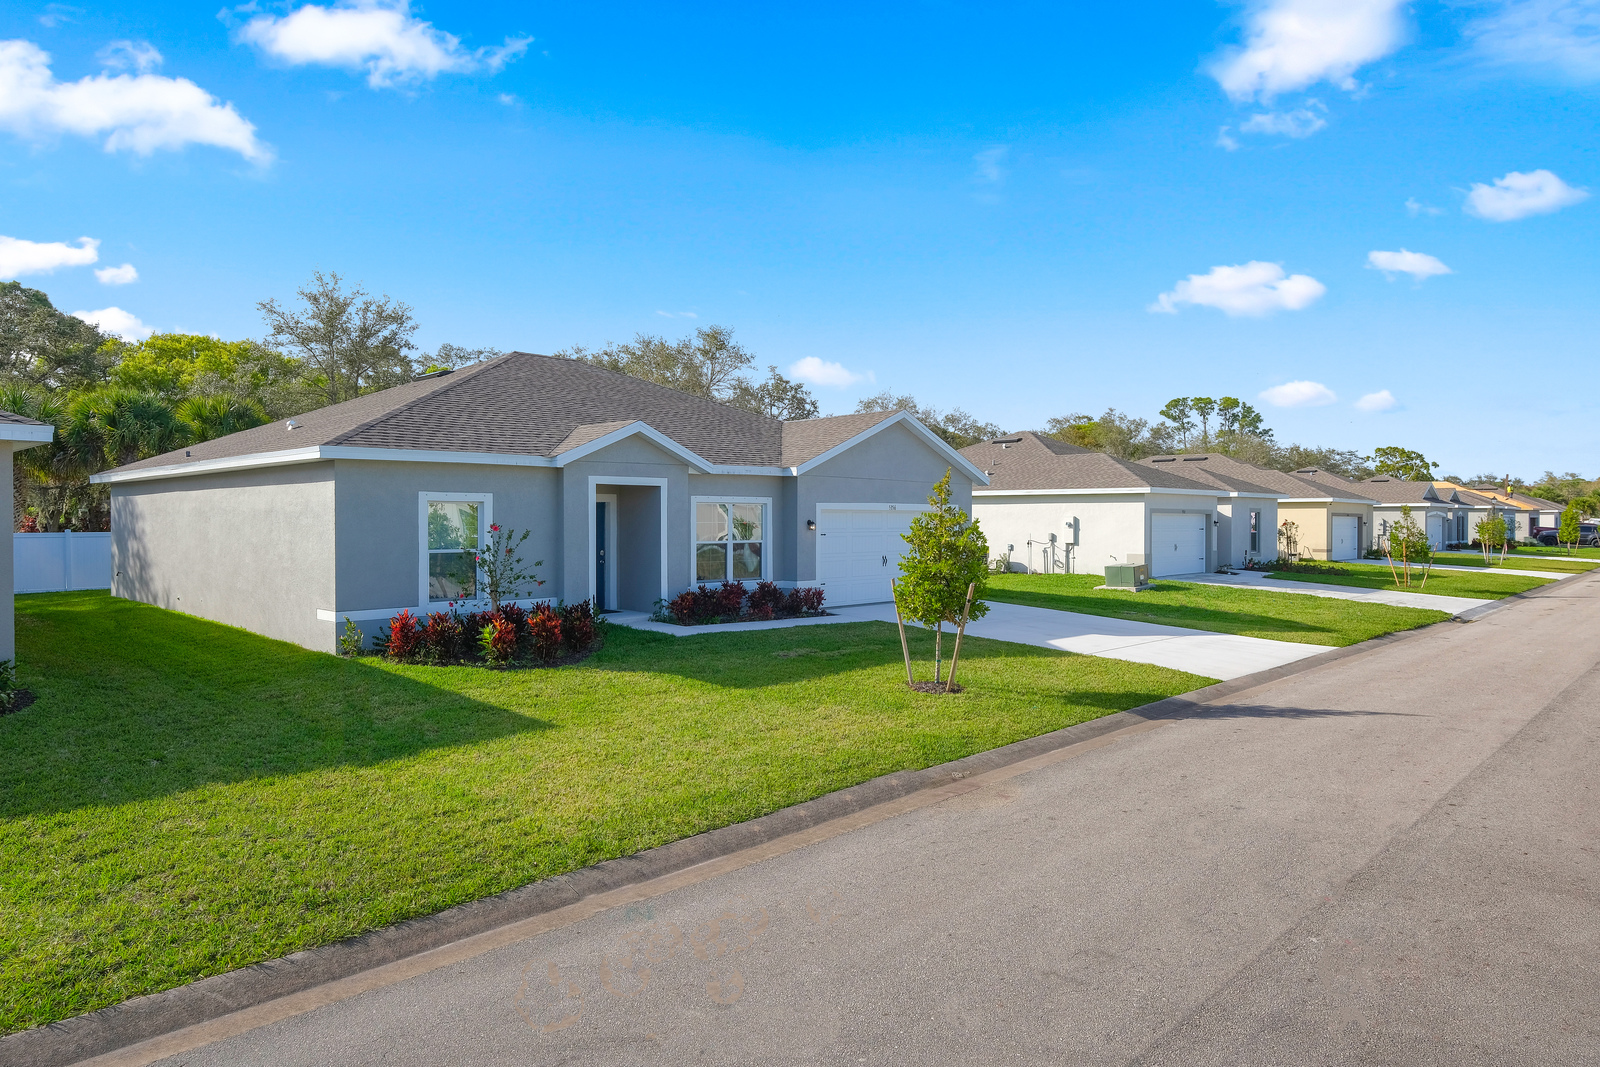 New Homes for sale at Oakland Lake in Fort Pierce, FL within